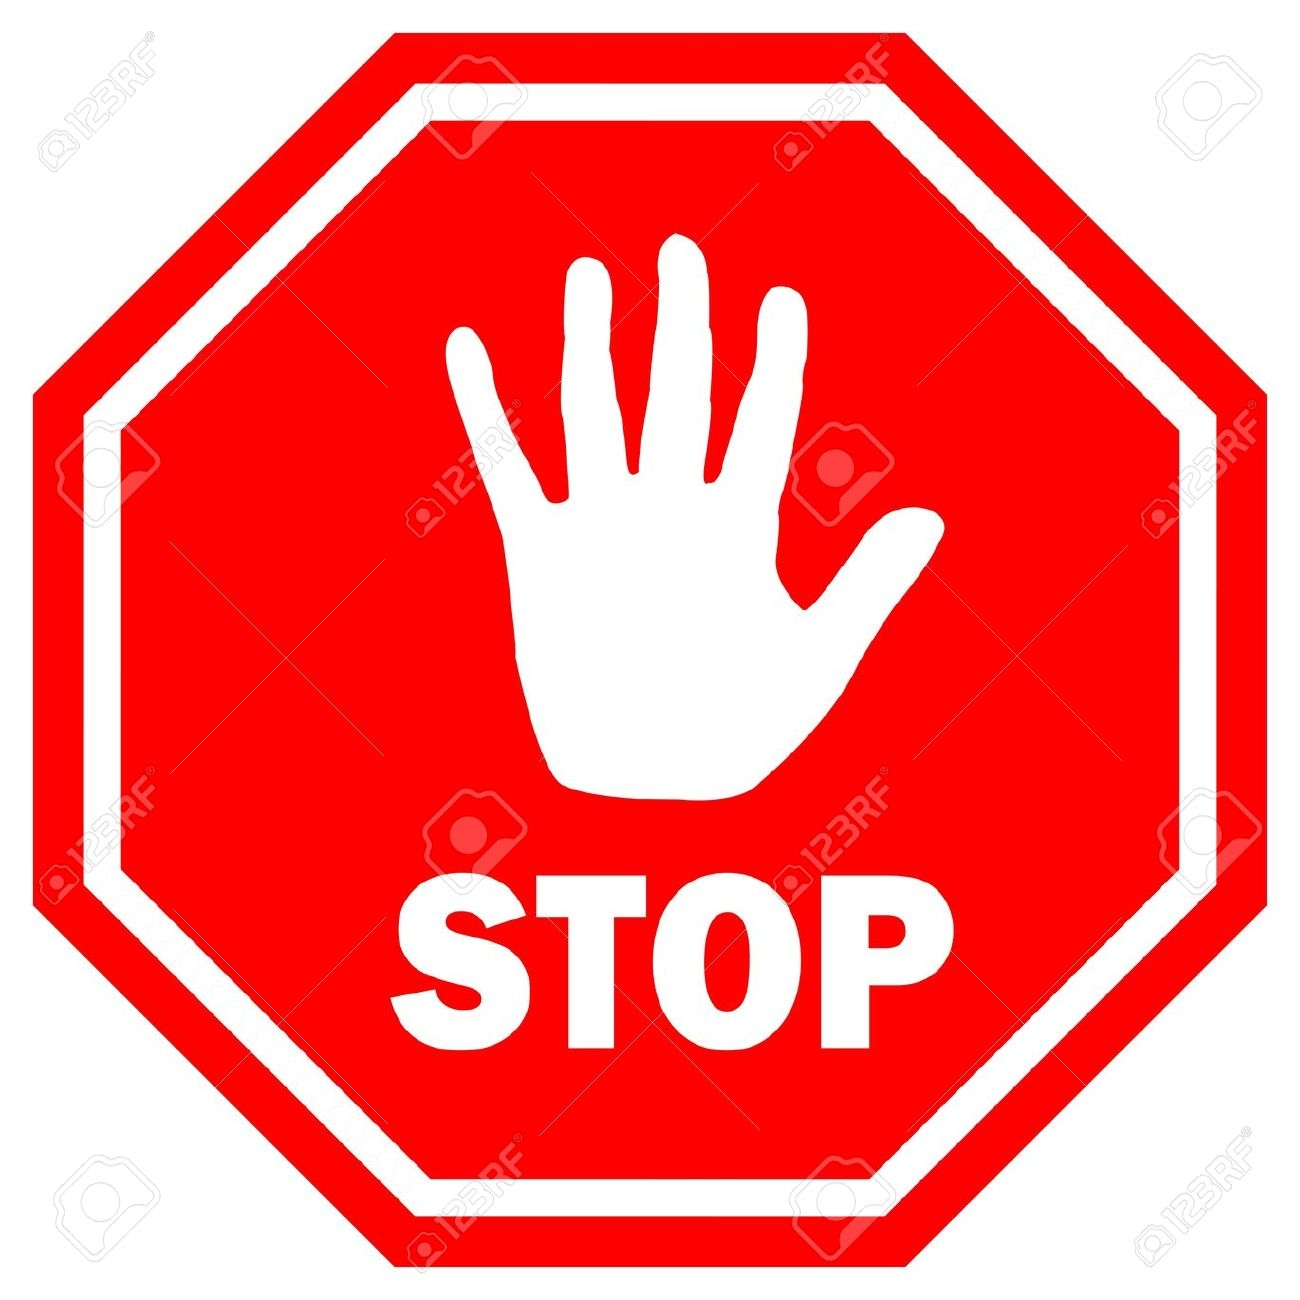 Stop clipart hand Hand #2513 Sign Clipart Hand